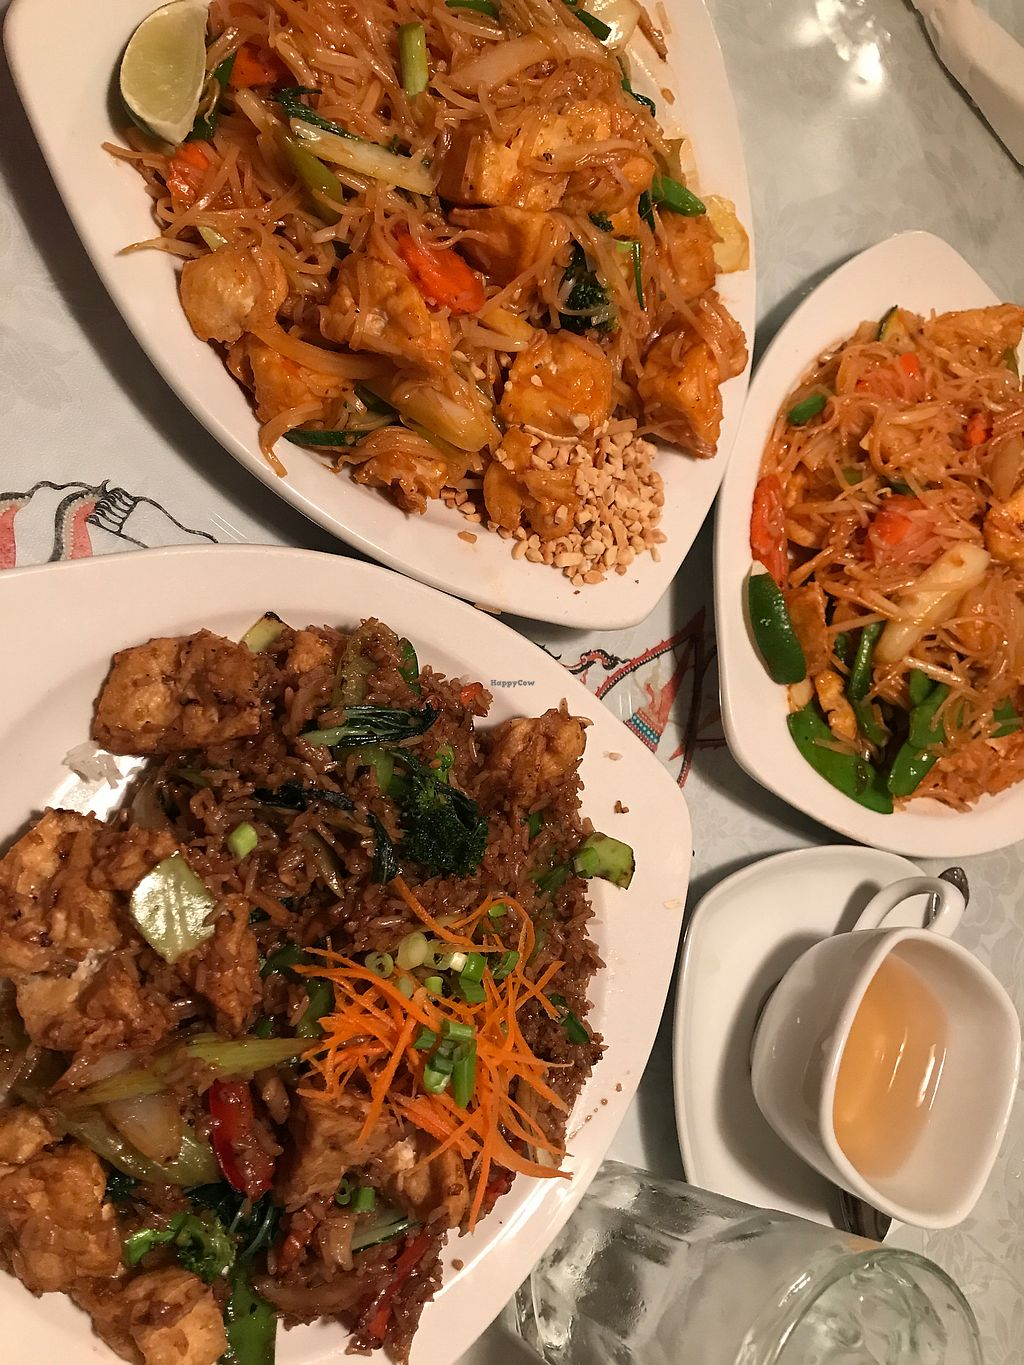 """Photo of Thai Room  by <a href=""""/members/profile/Dveg"""">Dveg</a> <br/>Stuffed n Happy! <br/> March 8, 2018  - <a href='/contact/abuse/image/29878/367960'>Report</a>"""